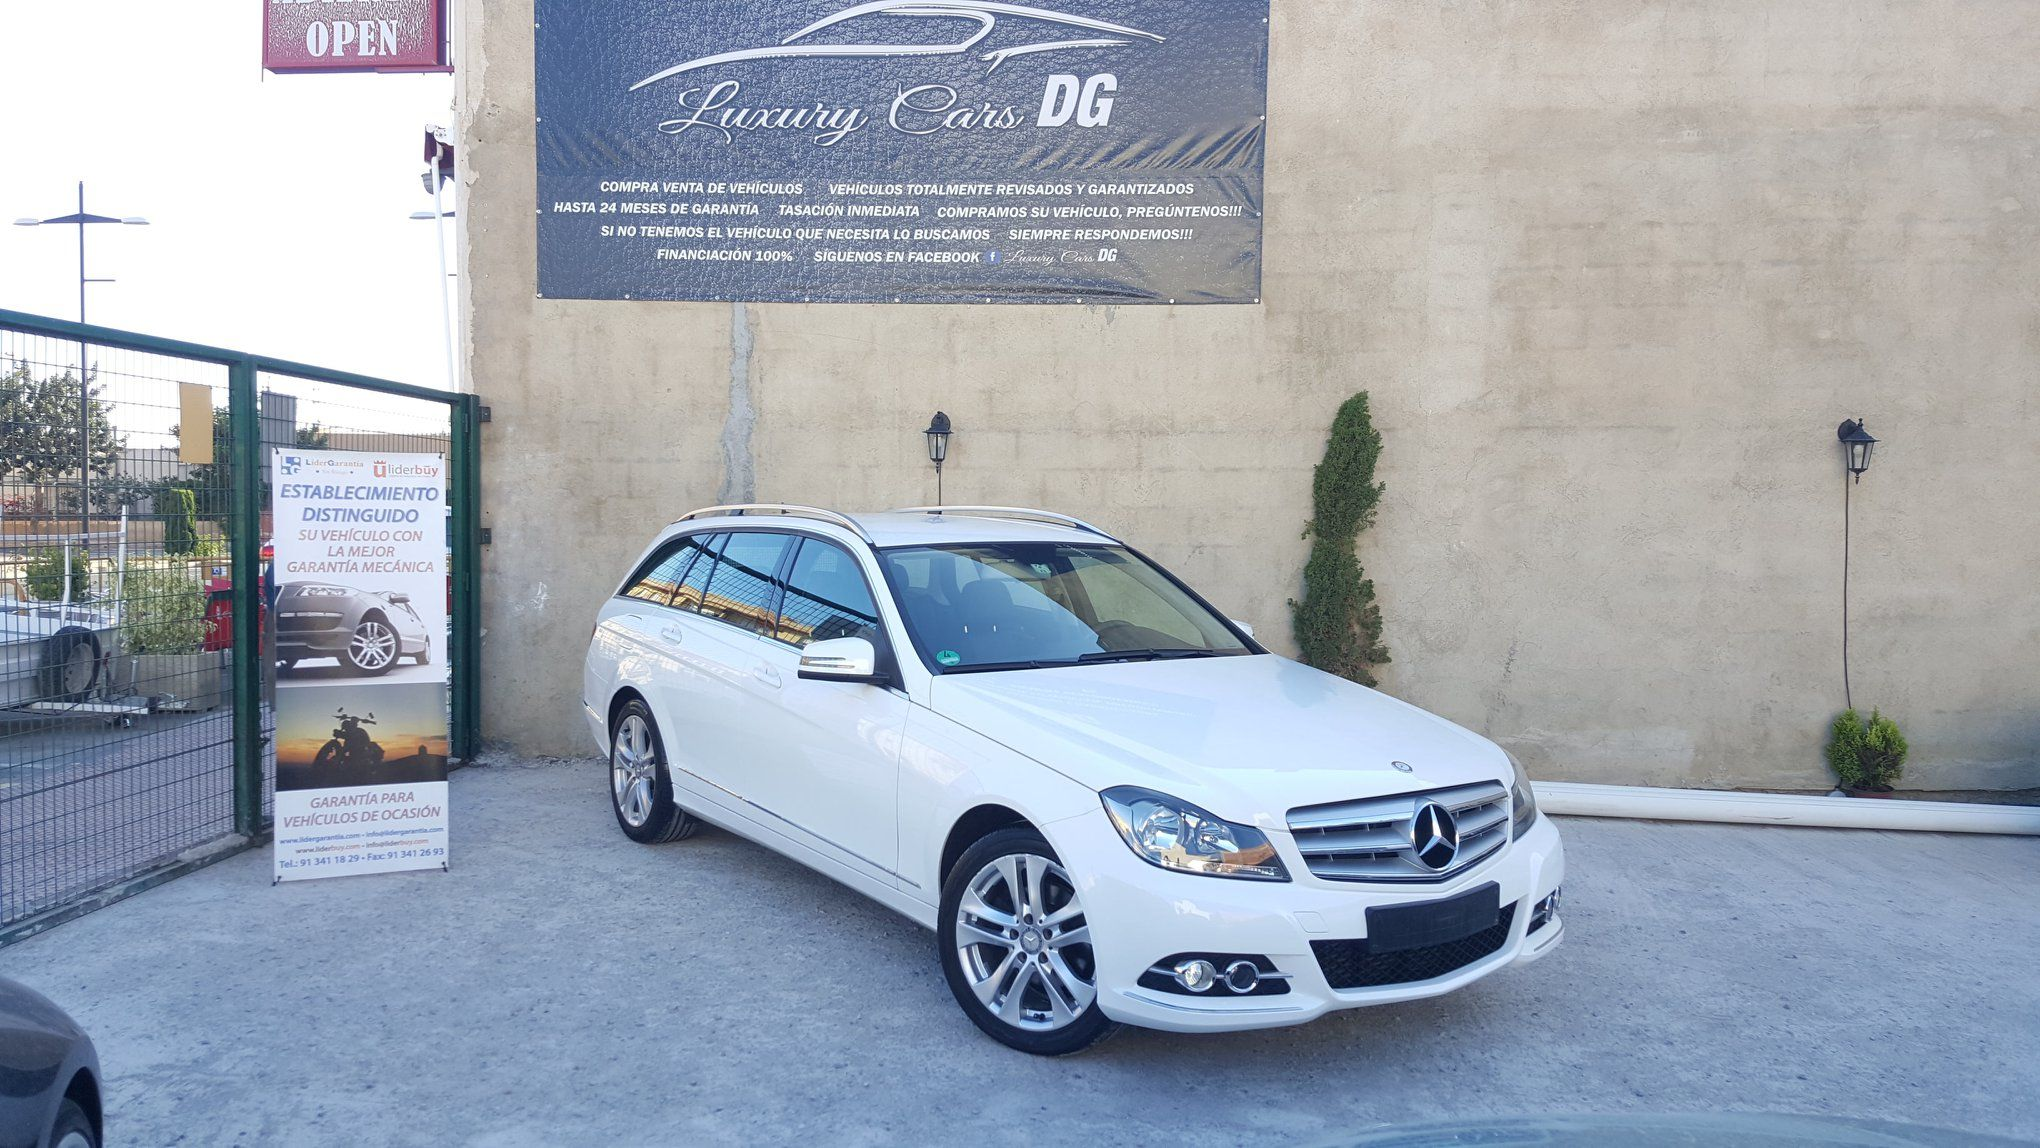 Mercedes C200 familiar: Venta de vehículos de Luxury Cars DG